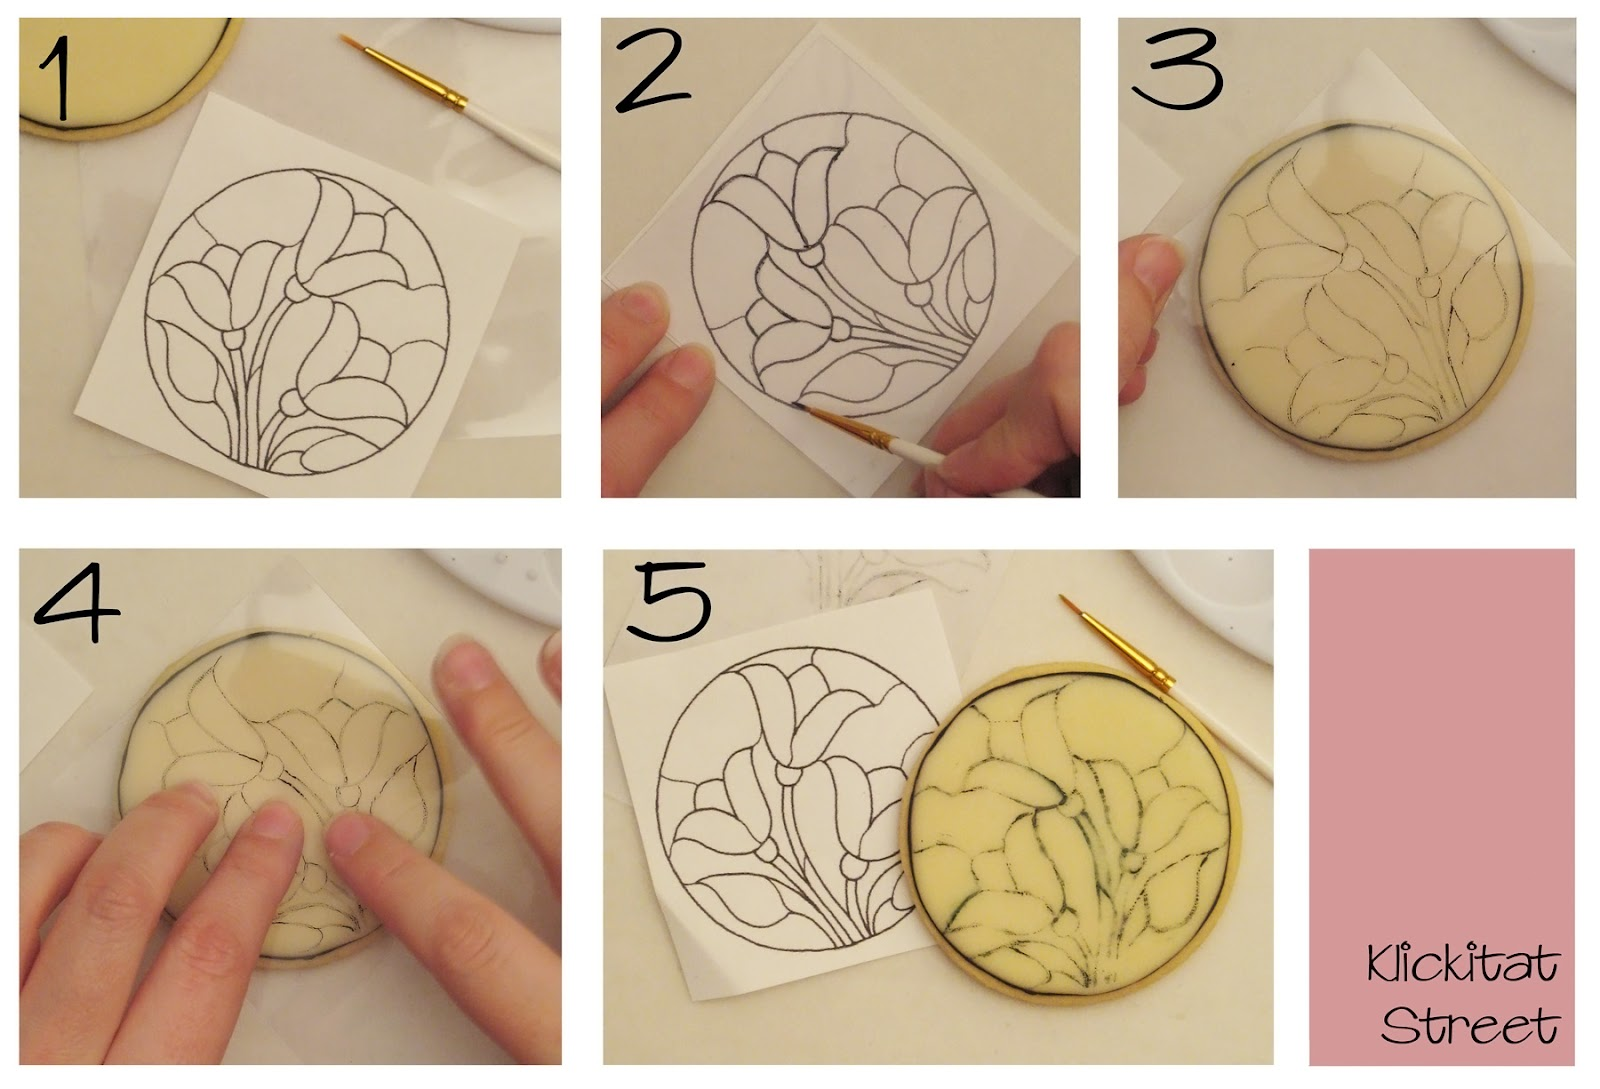 tutorial on drawing intricate designs without a KopyKake art projector